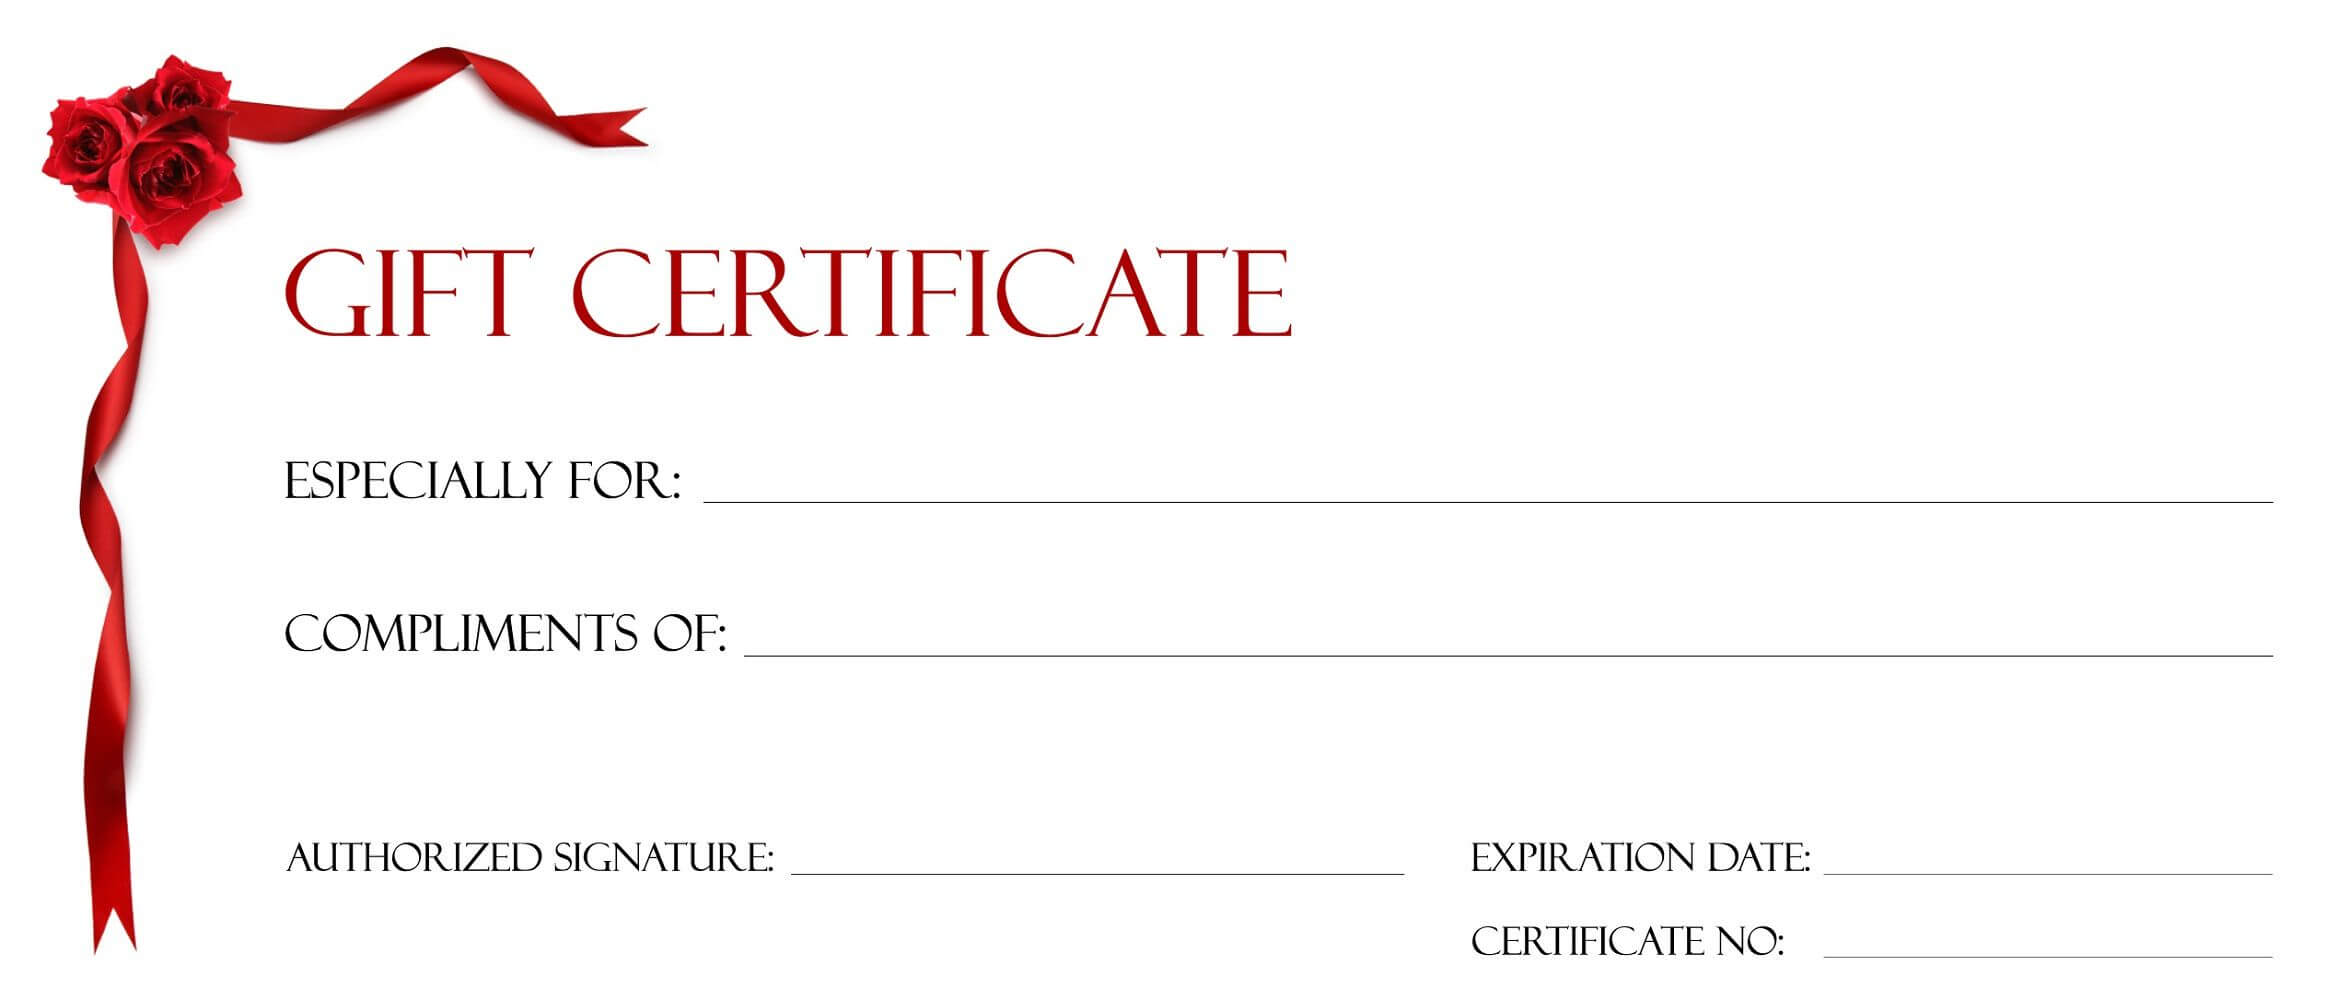 Gift Certificate Templates To Print | Gift Certificate With Regard To Printable Gift Certificates Templates Free